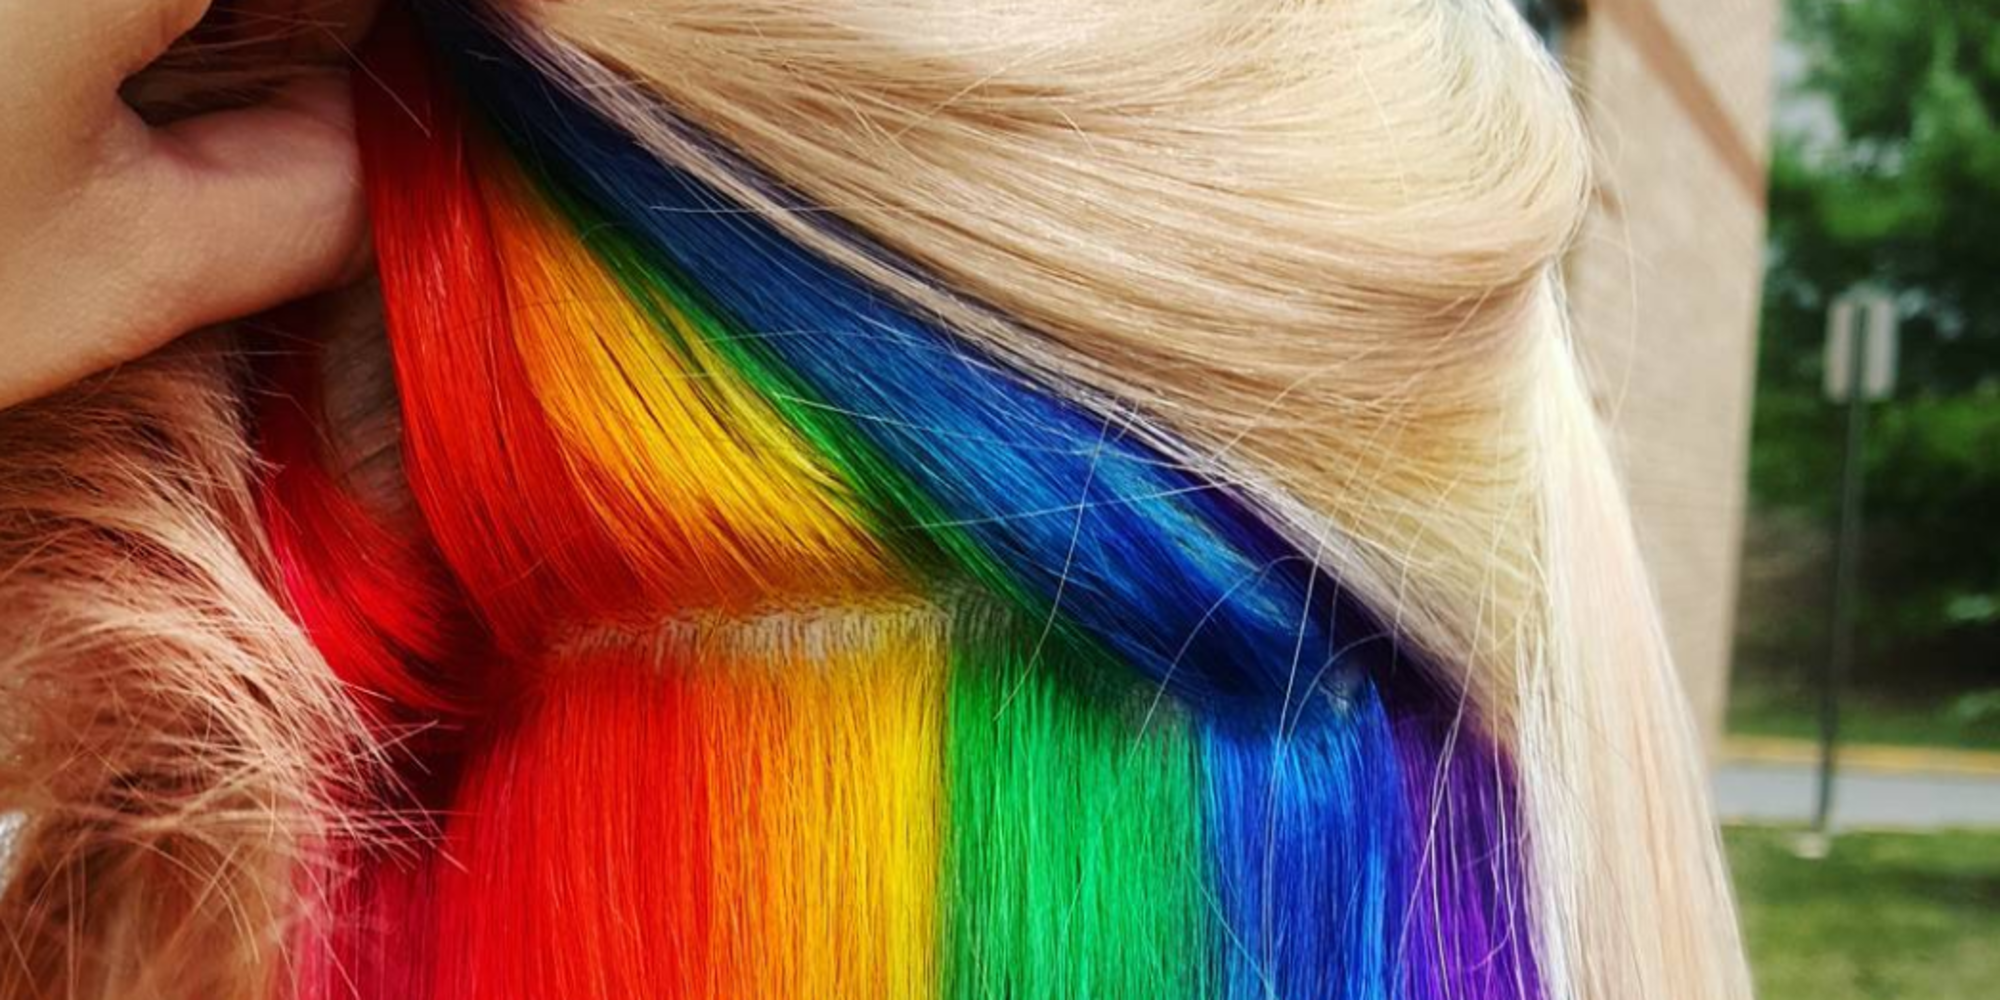 Forum on this topic: If You Love the Rainbow Trend, Weve , if-you-love-the-rainbow-trend-weve/